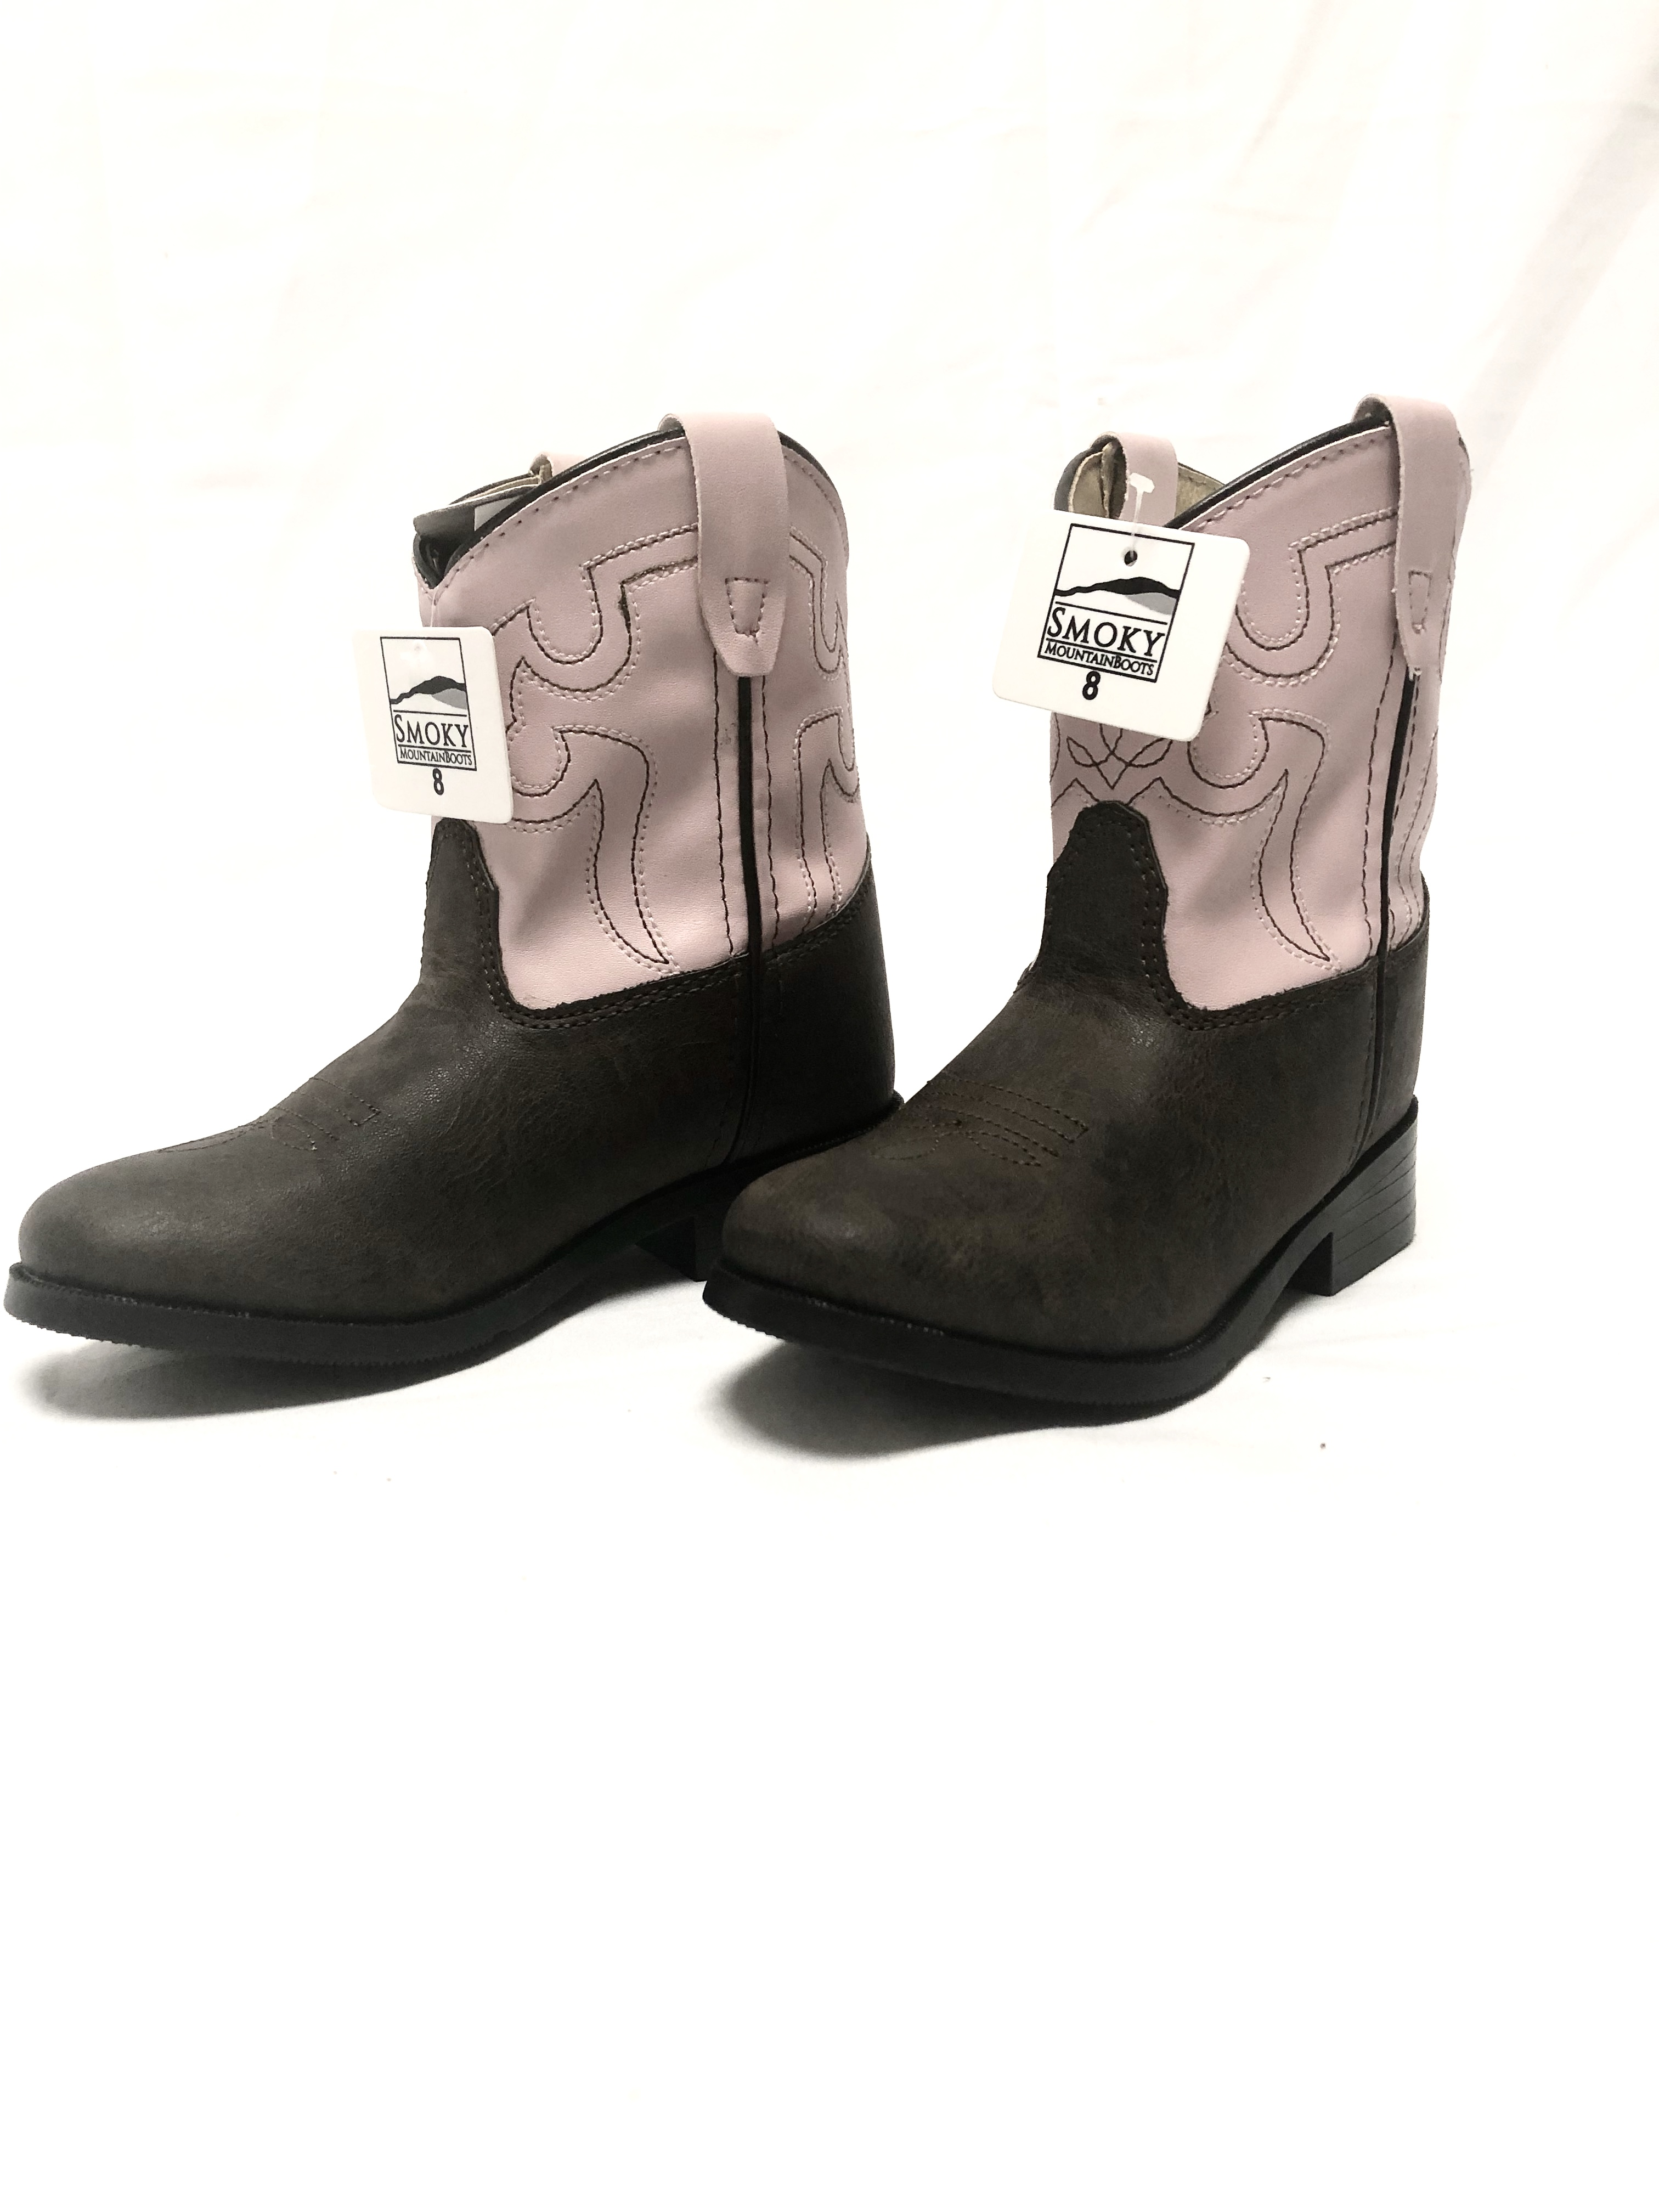 1a12c591c57 Details about Smoky Mountain Boots Style 1574 T, Pattern Monterey, Color  Brown/Pink, Size 8